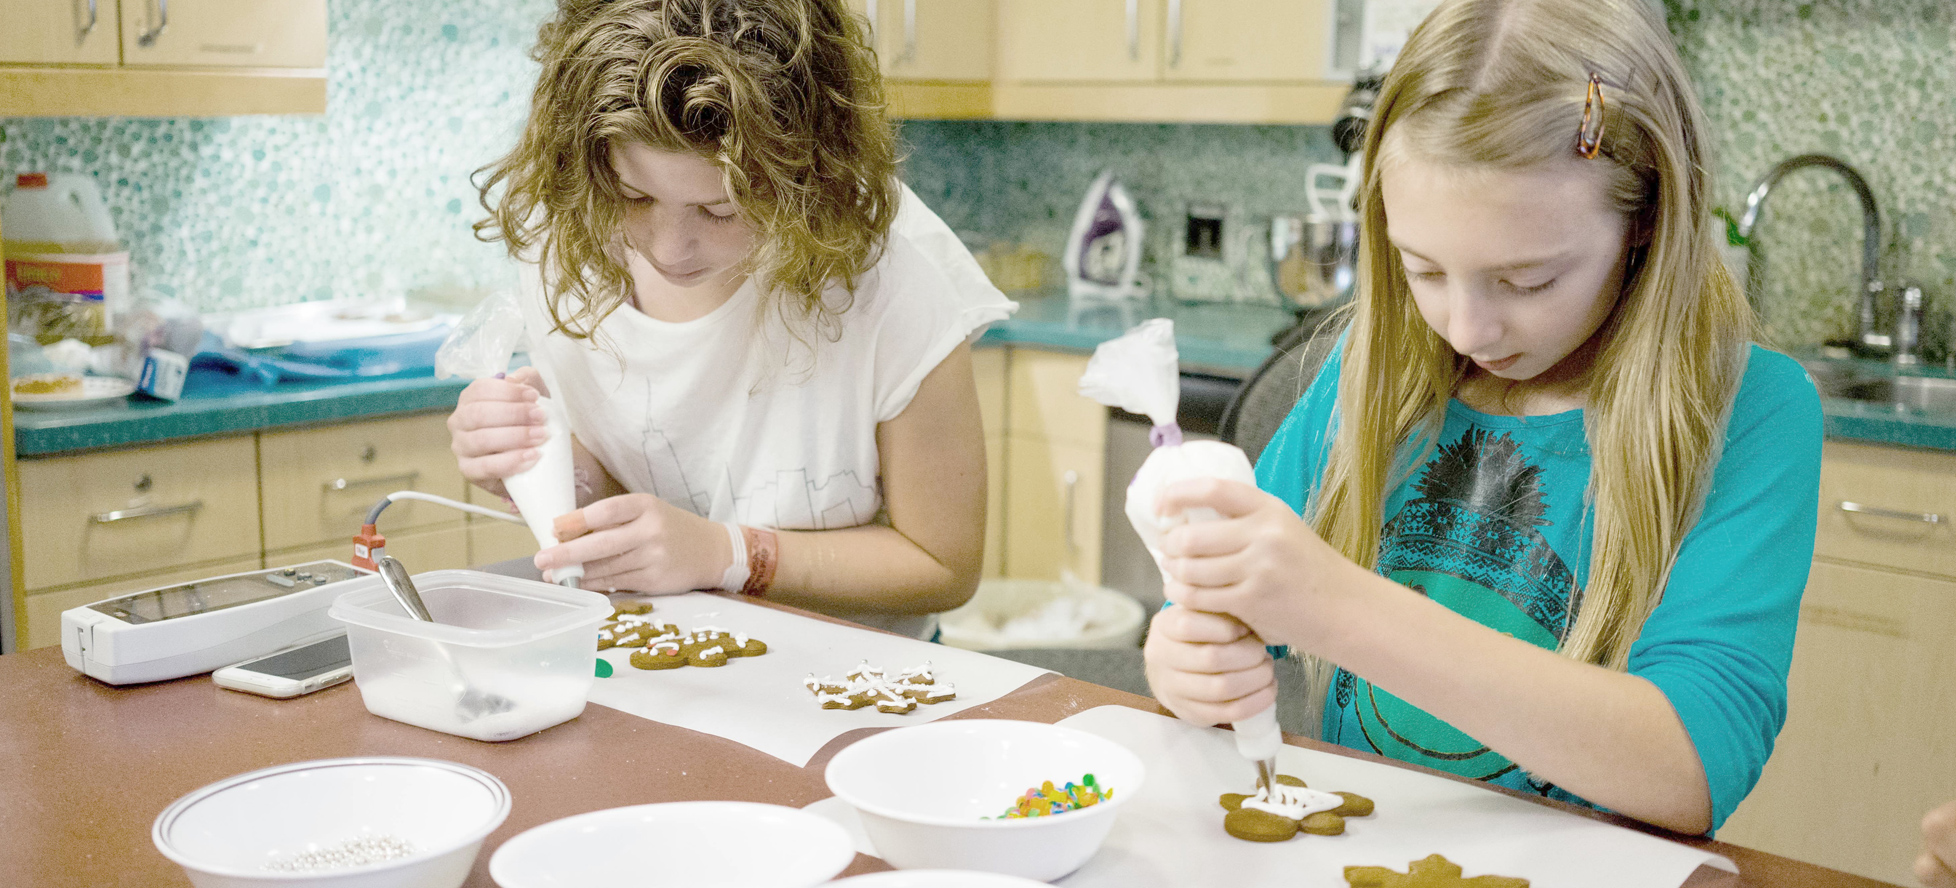 two girls decorating cookies